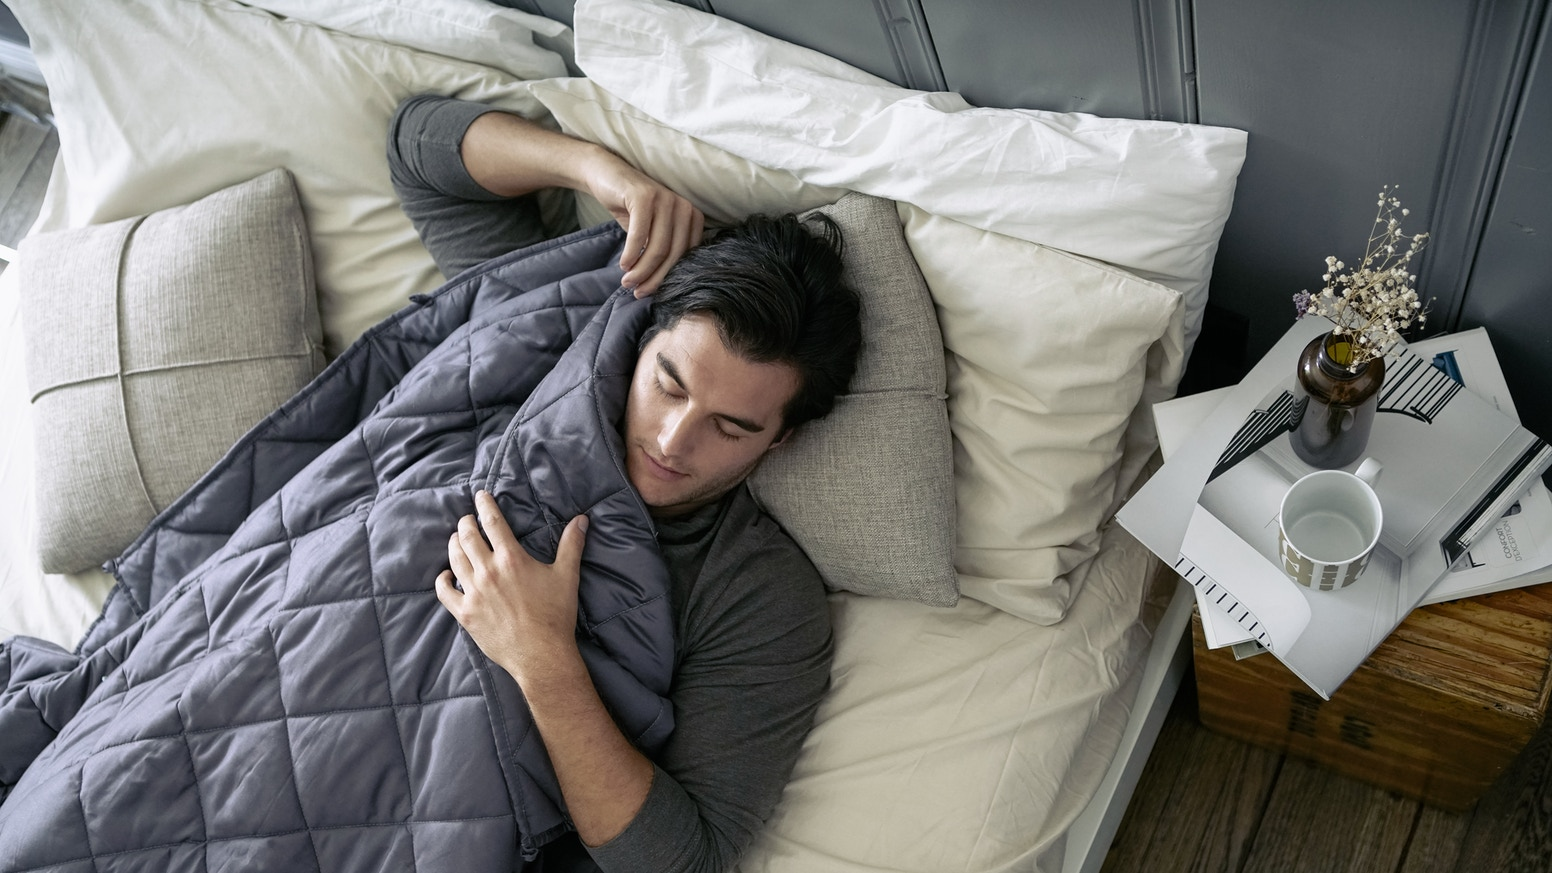 Reviv is a smart, eco-friendly weighted blanket that uses nanotechnology to help you chill like a panda.